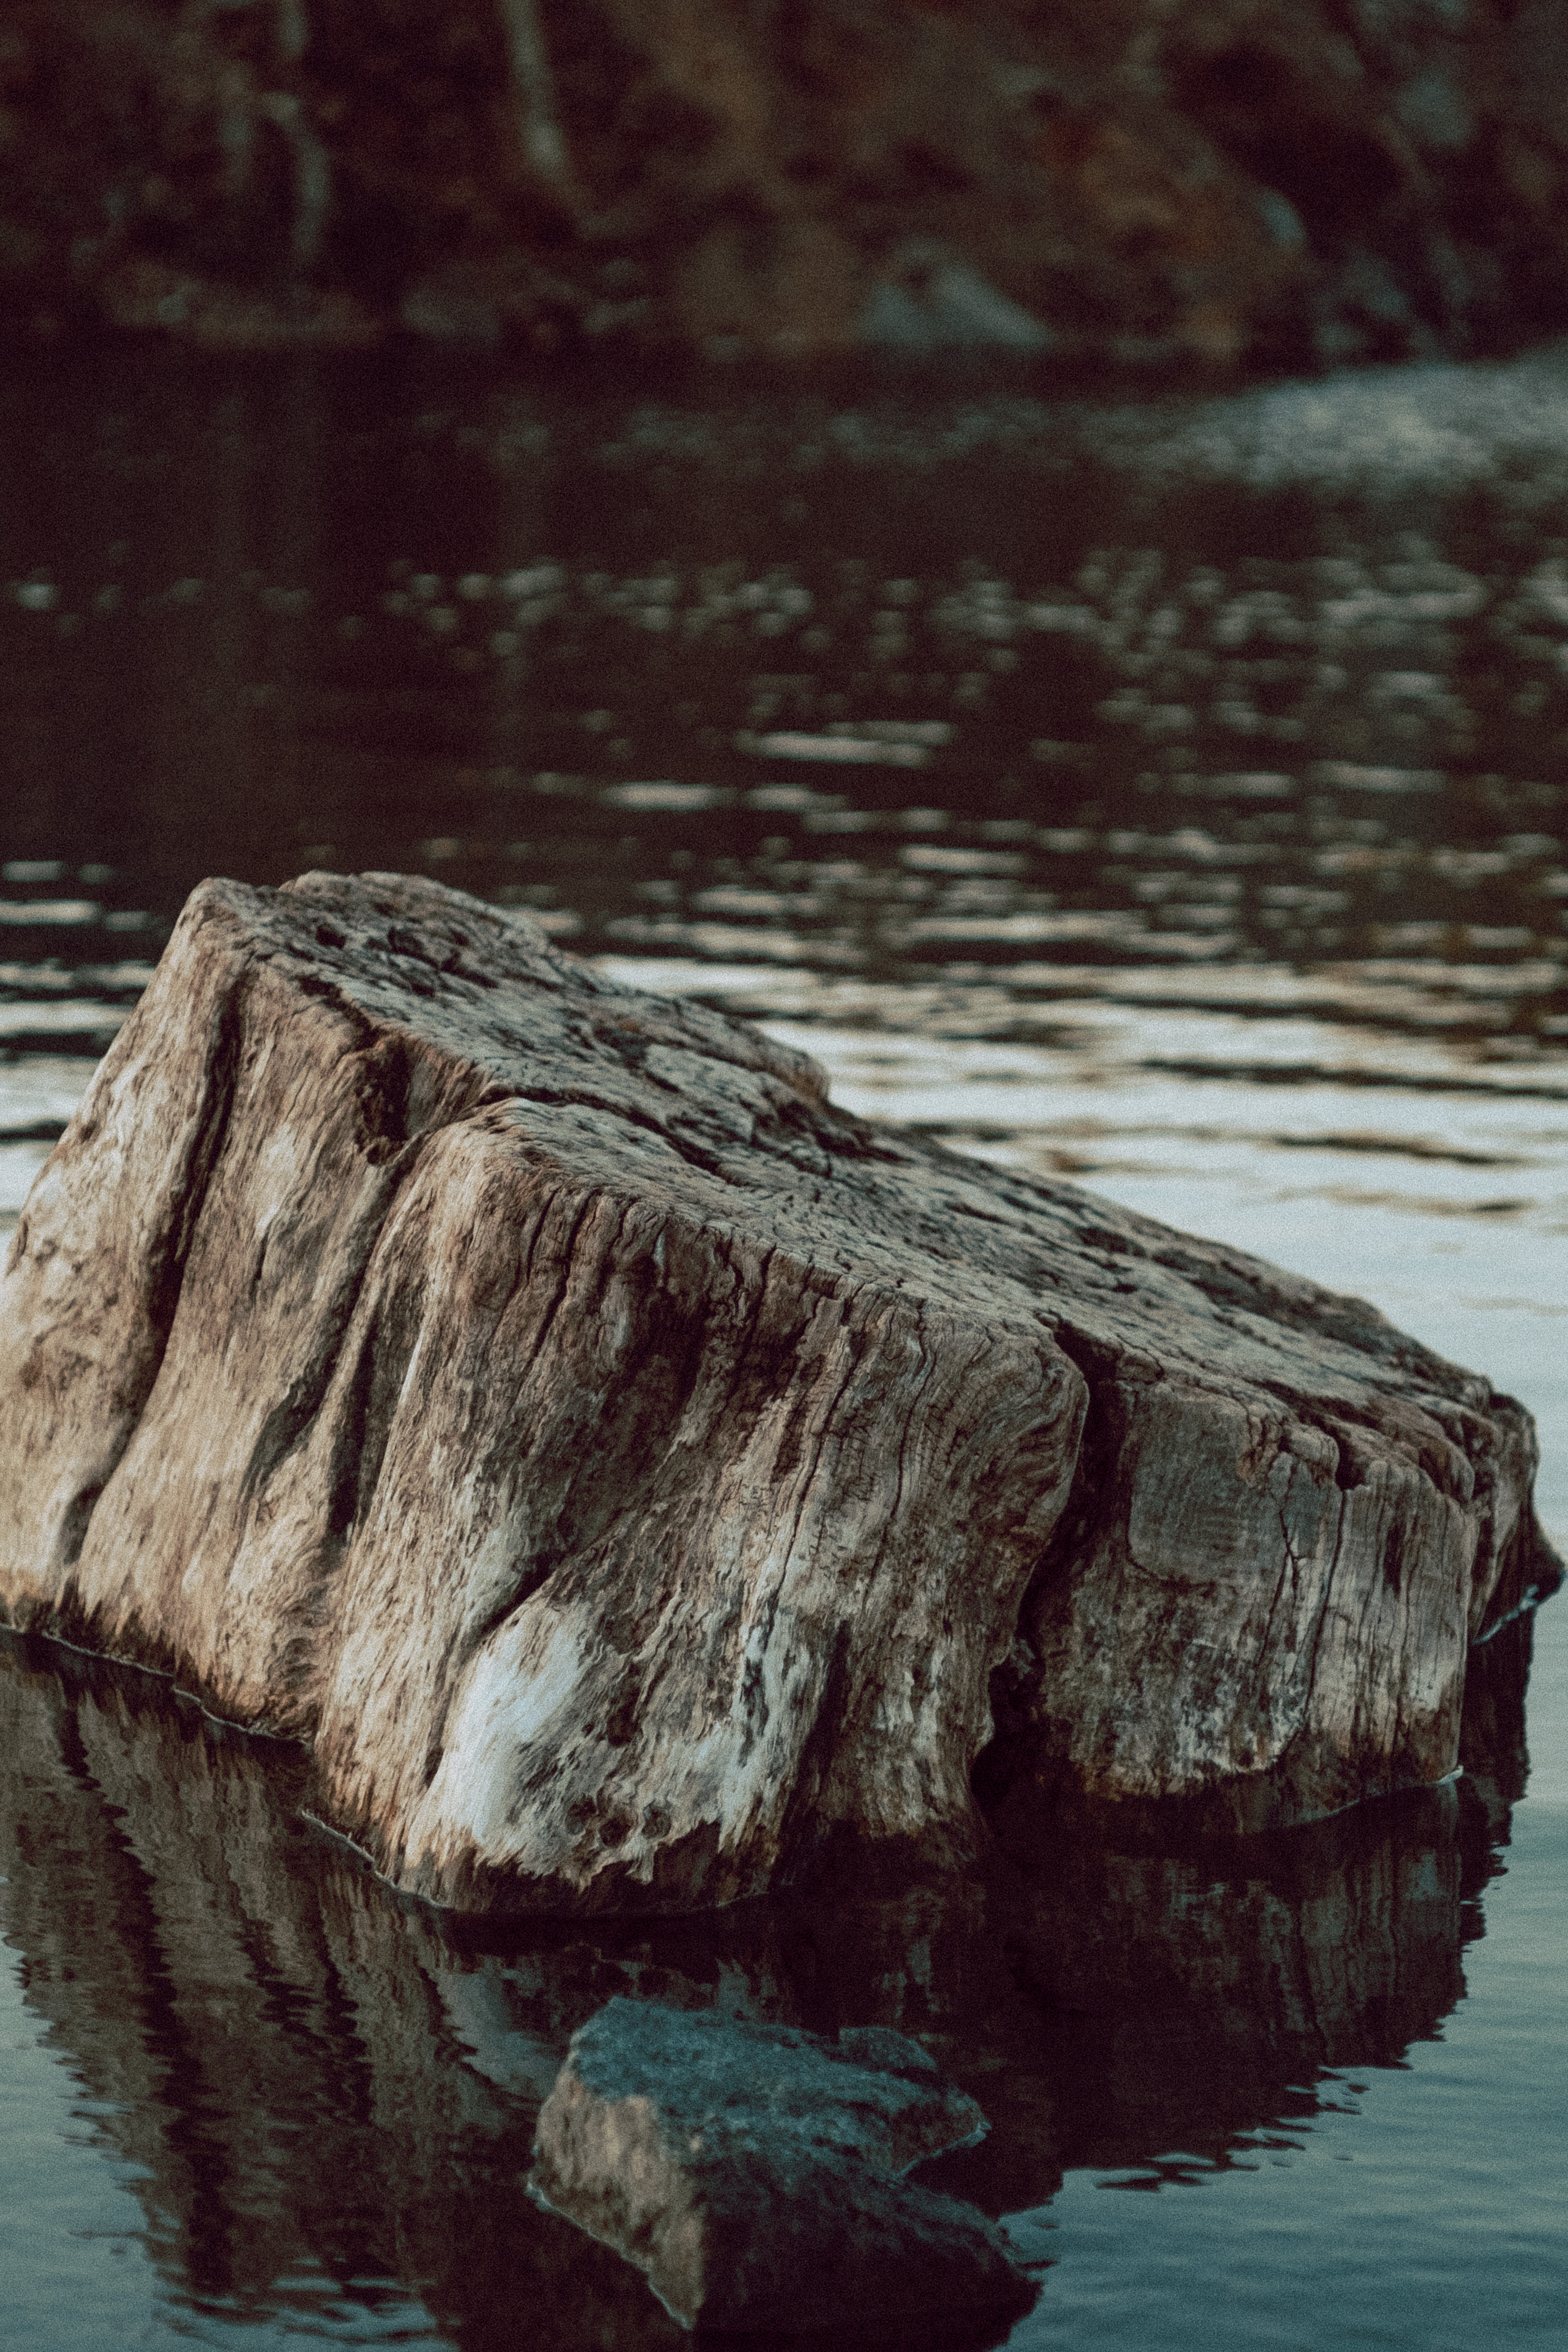 A Tree Stump at The Cuts